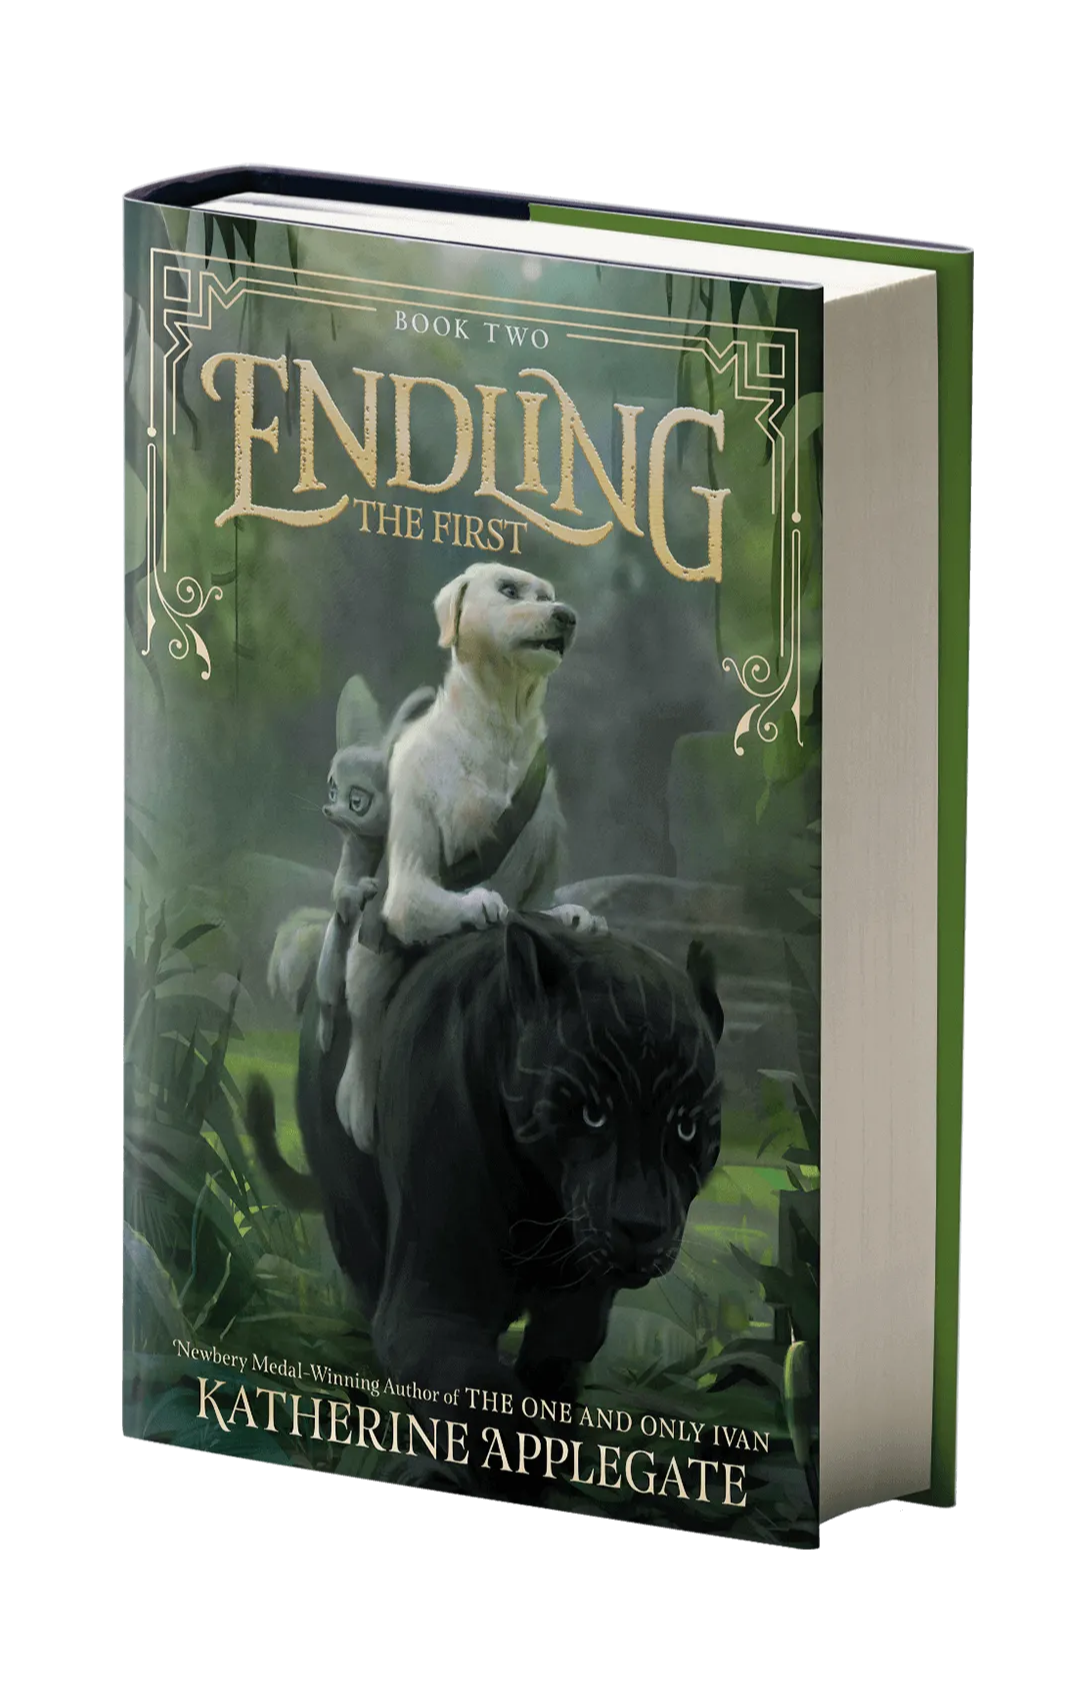 Endling The First